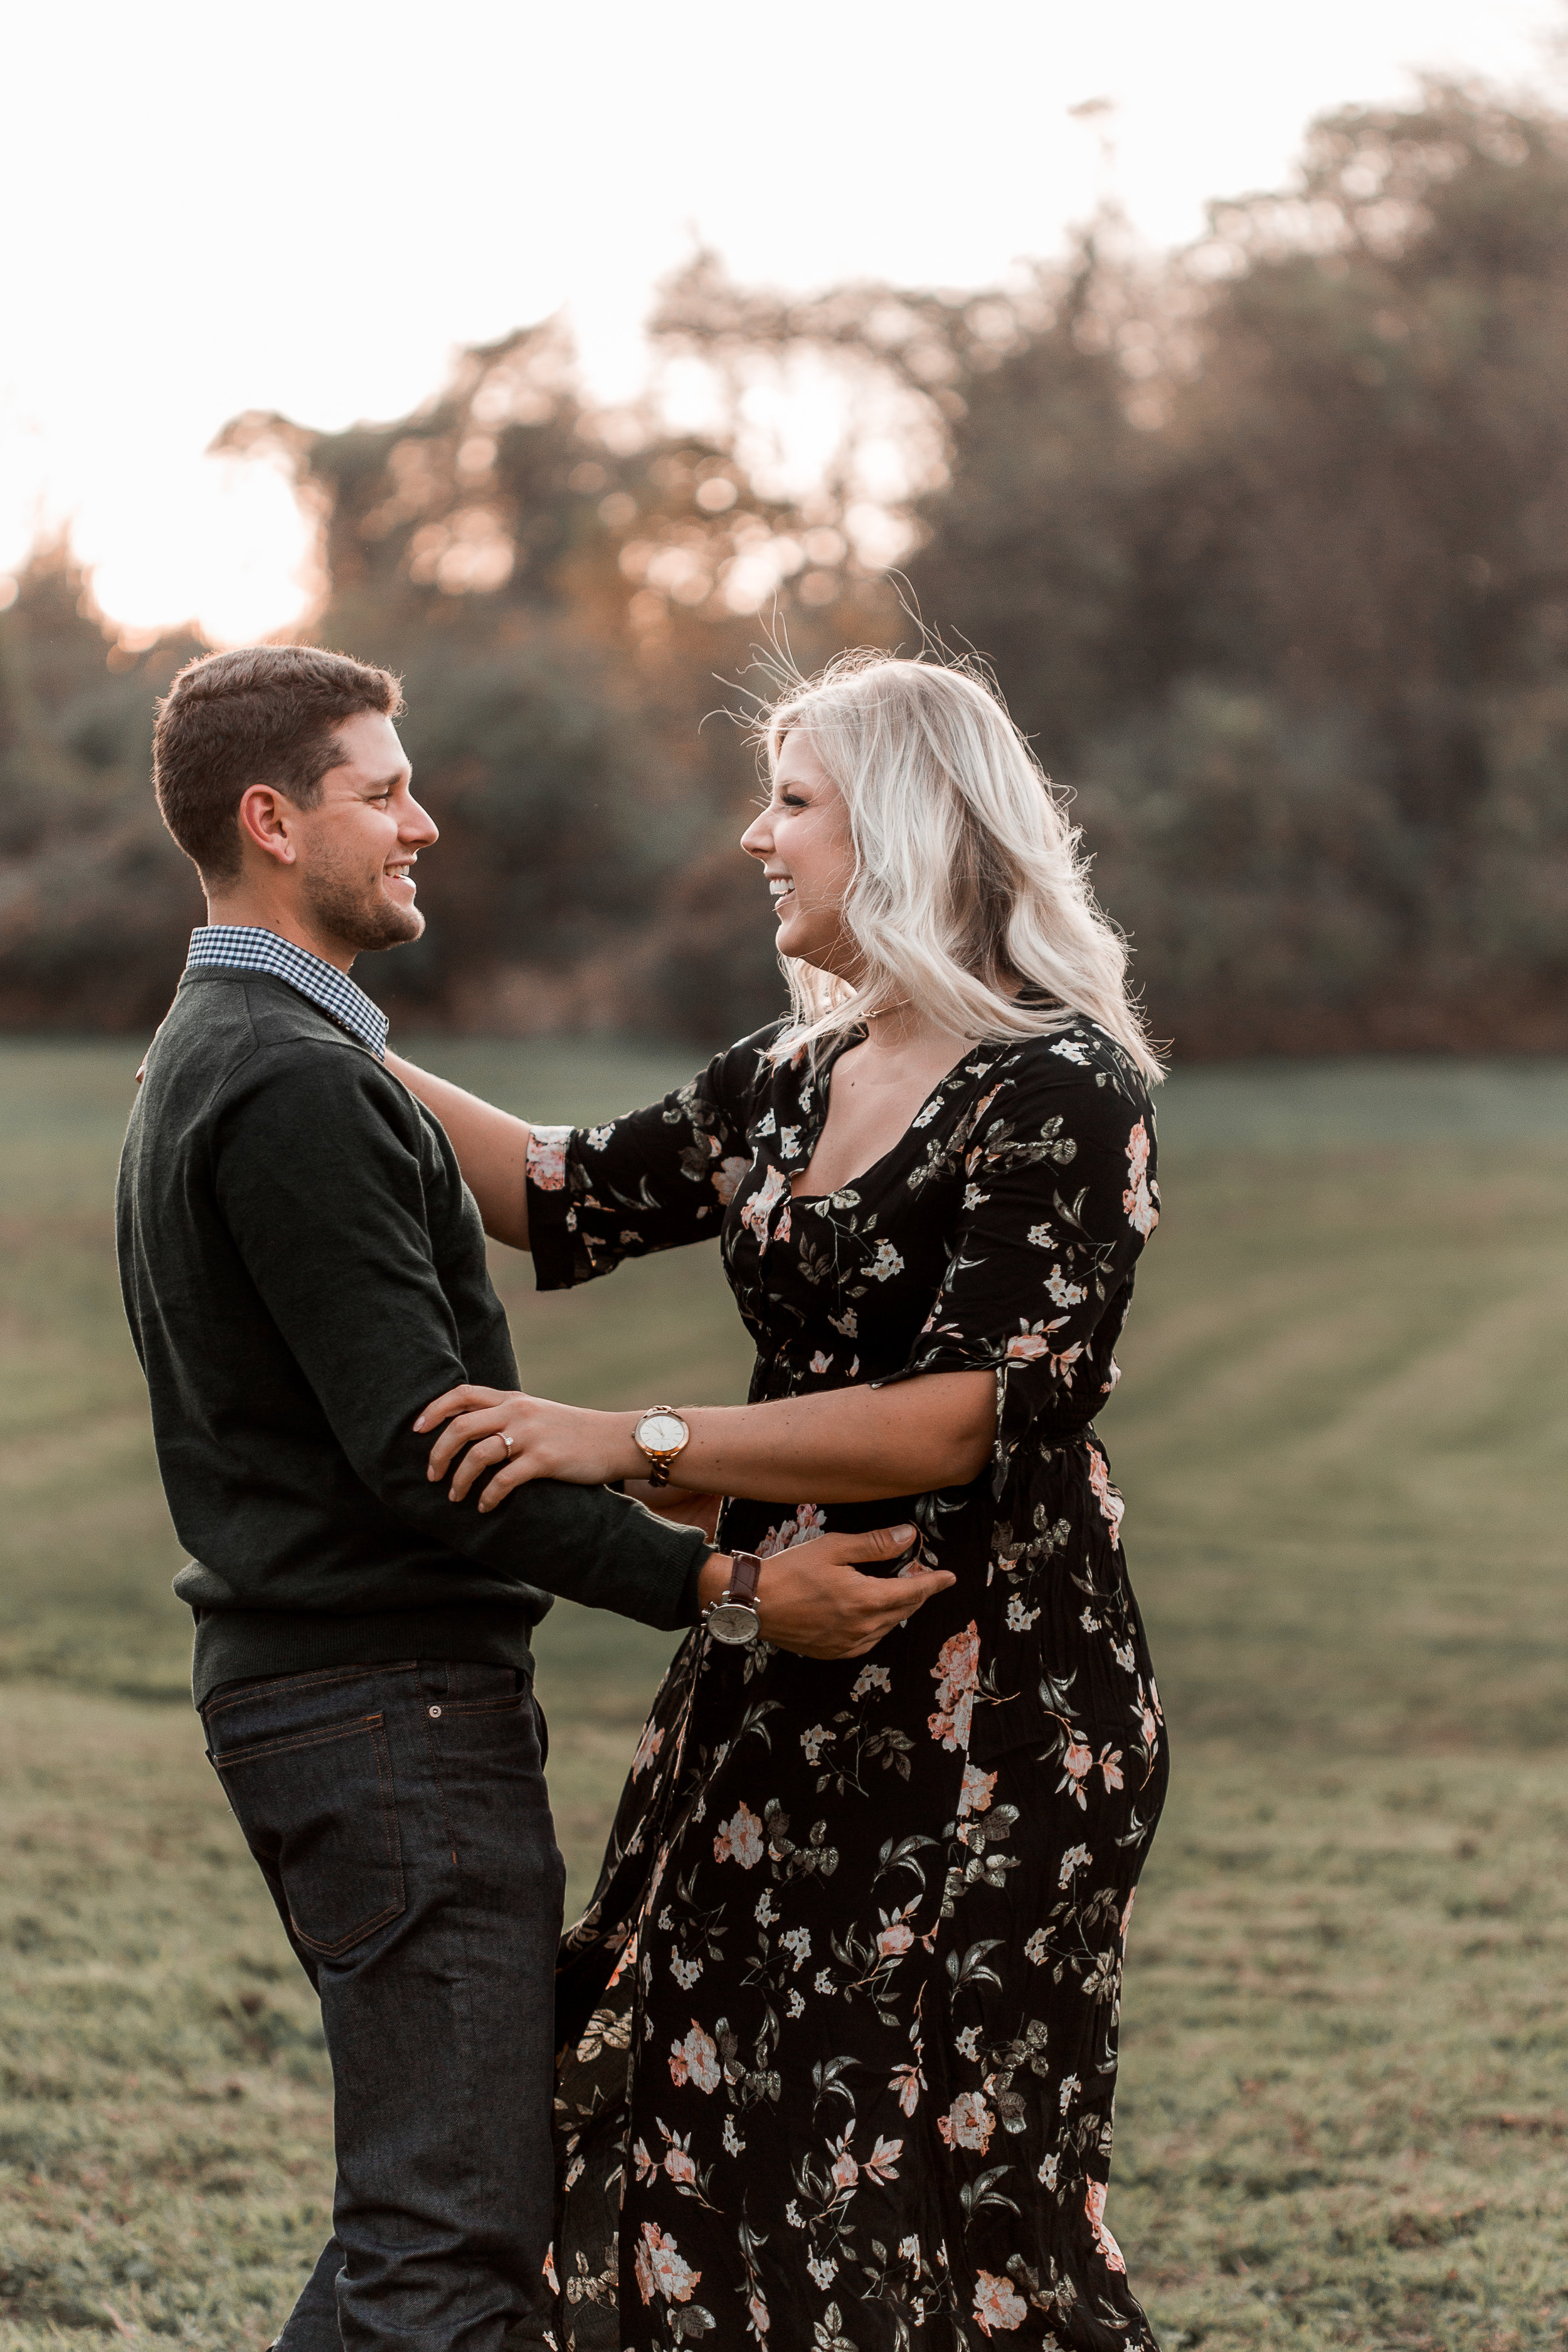 nicole-daacke-photography-carefree-bohemian-lancaster-pa-pennsylvania-engagement-photos-engagement-session-golden-sunset-adventure-session-in-lancaster-pa-lancaster-pa-outdoor-wedding-photographer-3.jpg